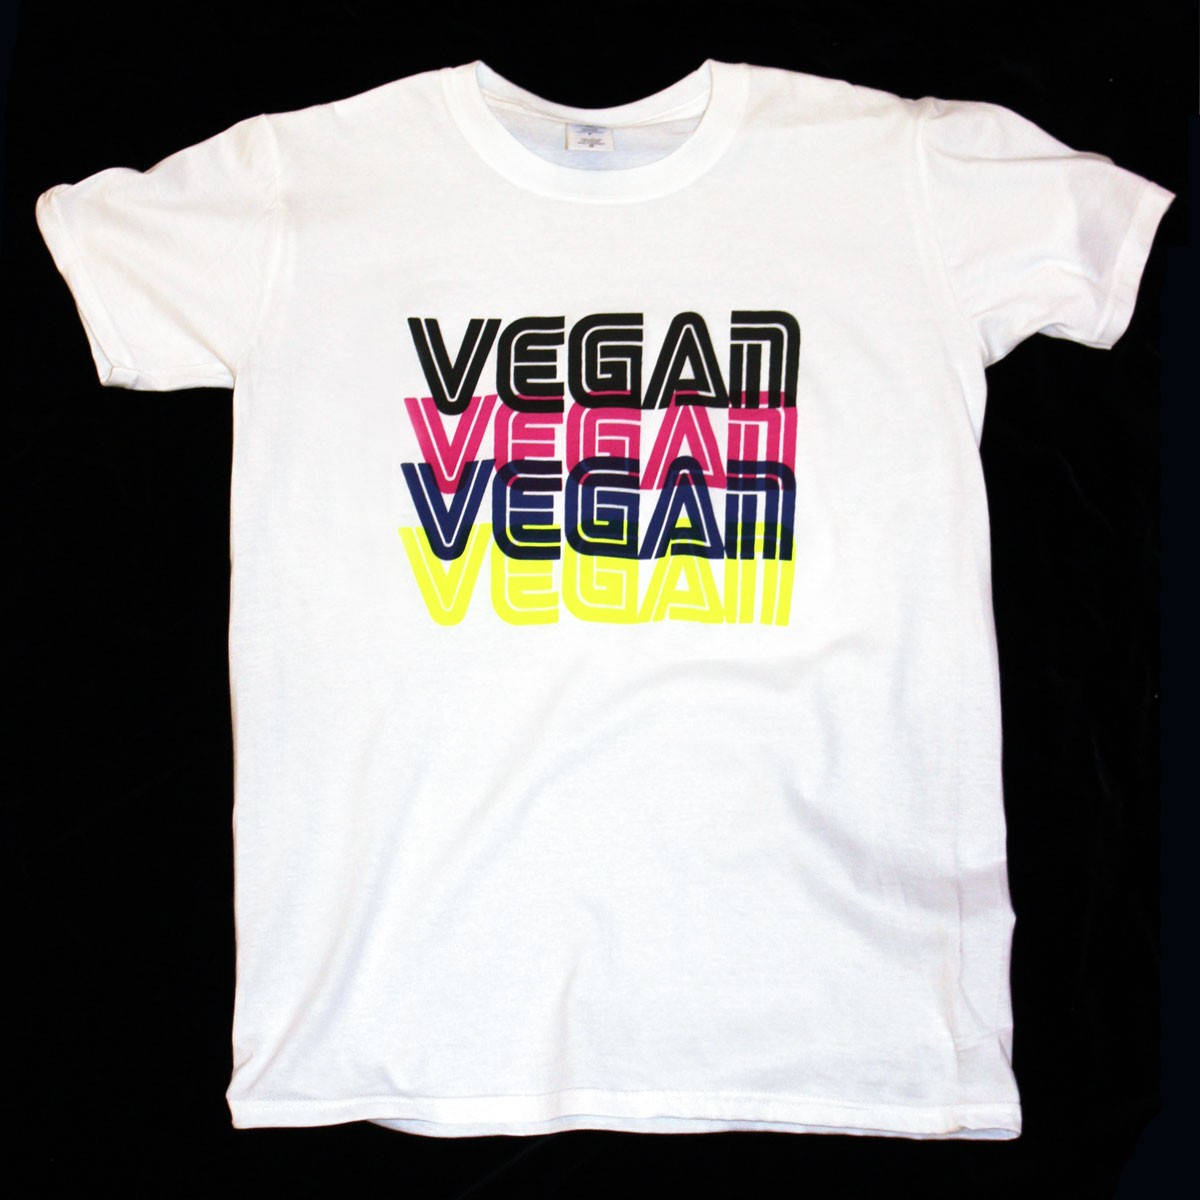 VEGAN VEGAN ... T-Shirt